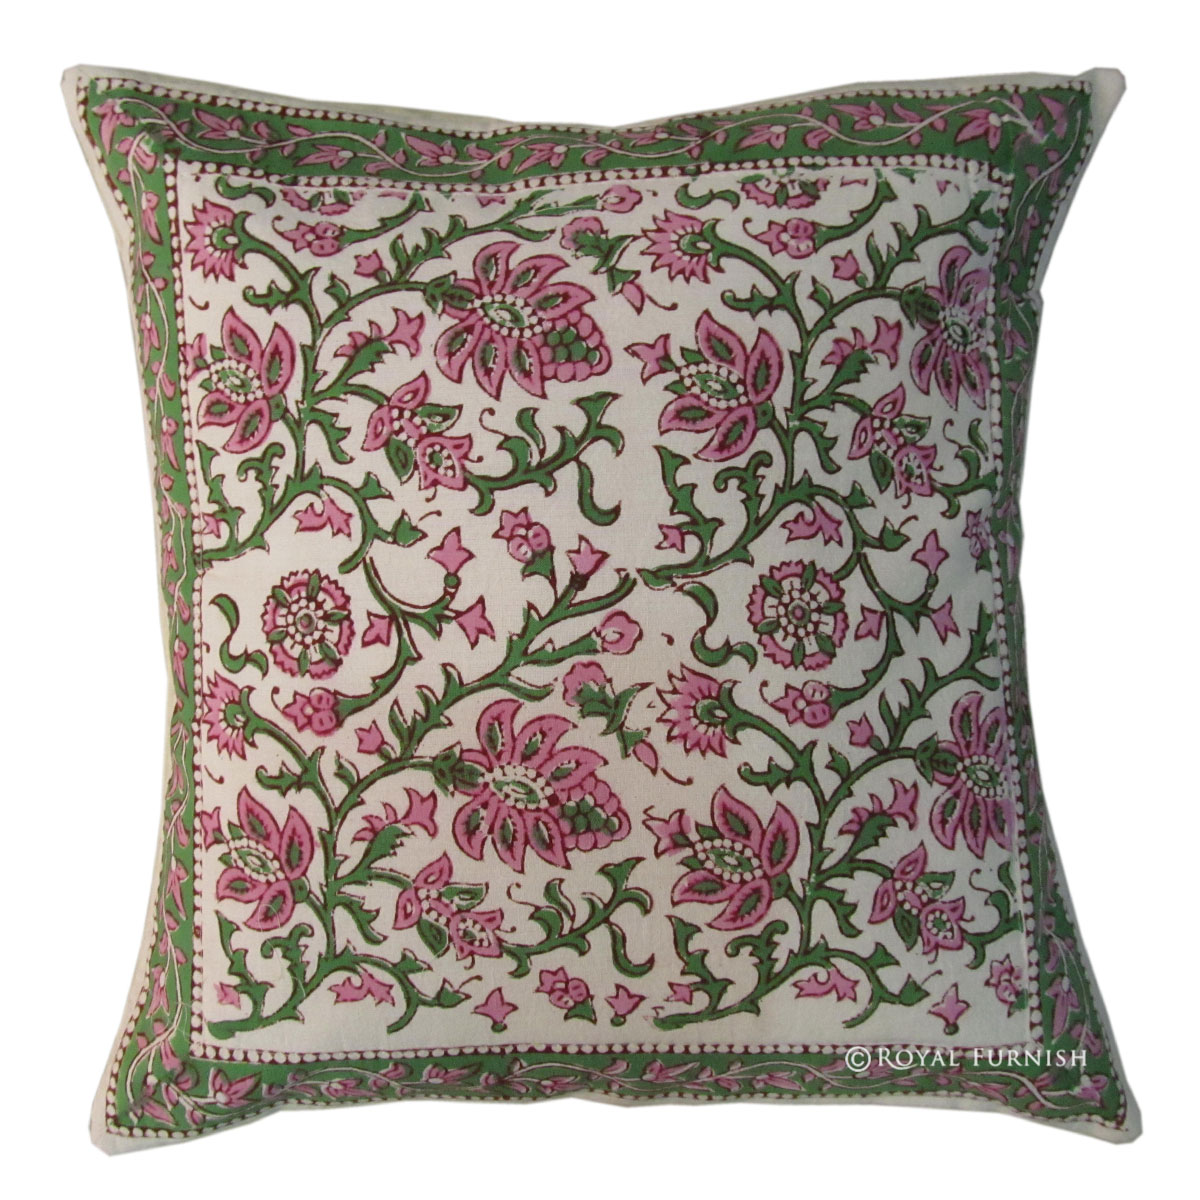 16 Quot White Floral Indian Block Printed Accent Throw Pillow